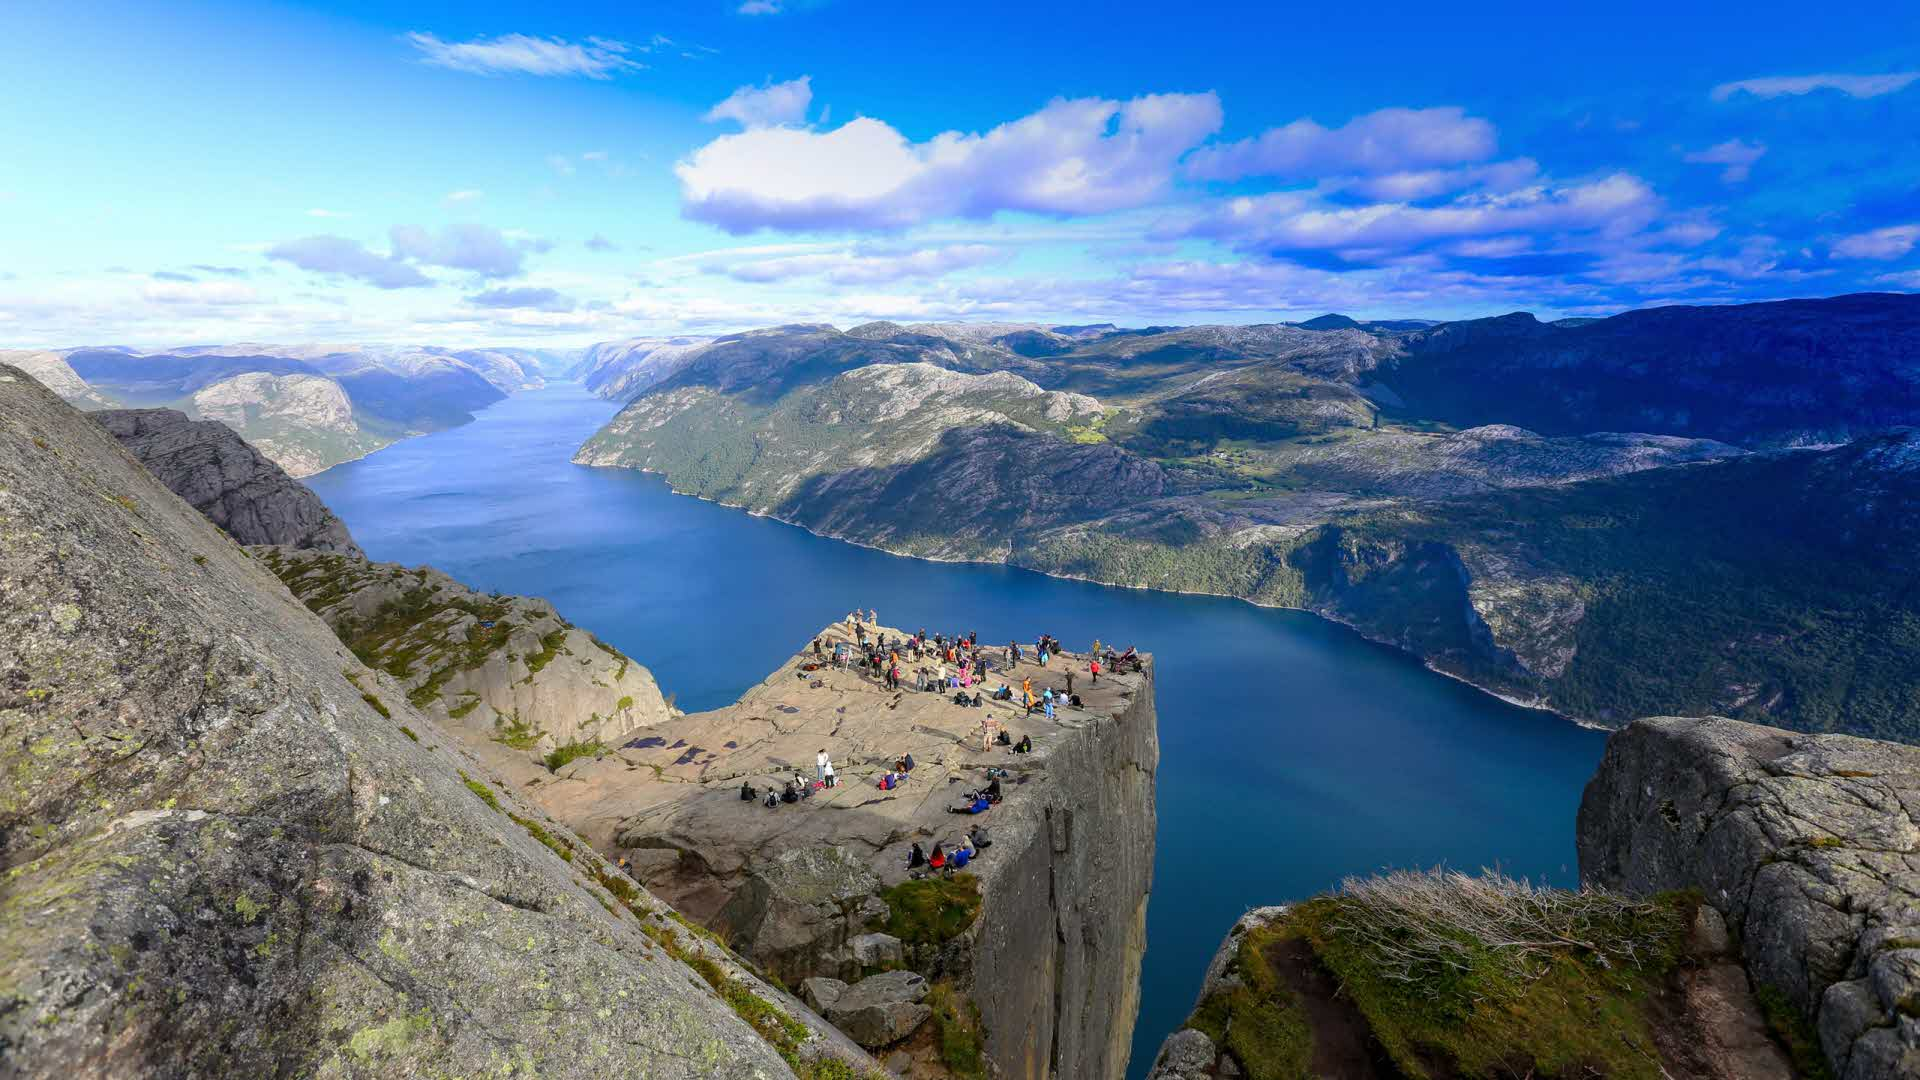 Panorama view from above Pulpit Rock, crowd of people standing near edge. Lysefjord can be seen as stretching out to infinity